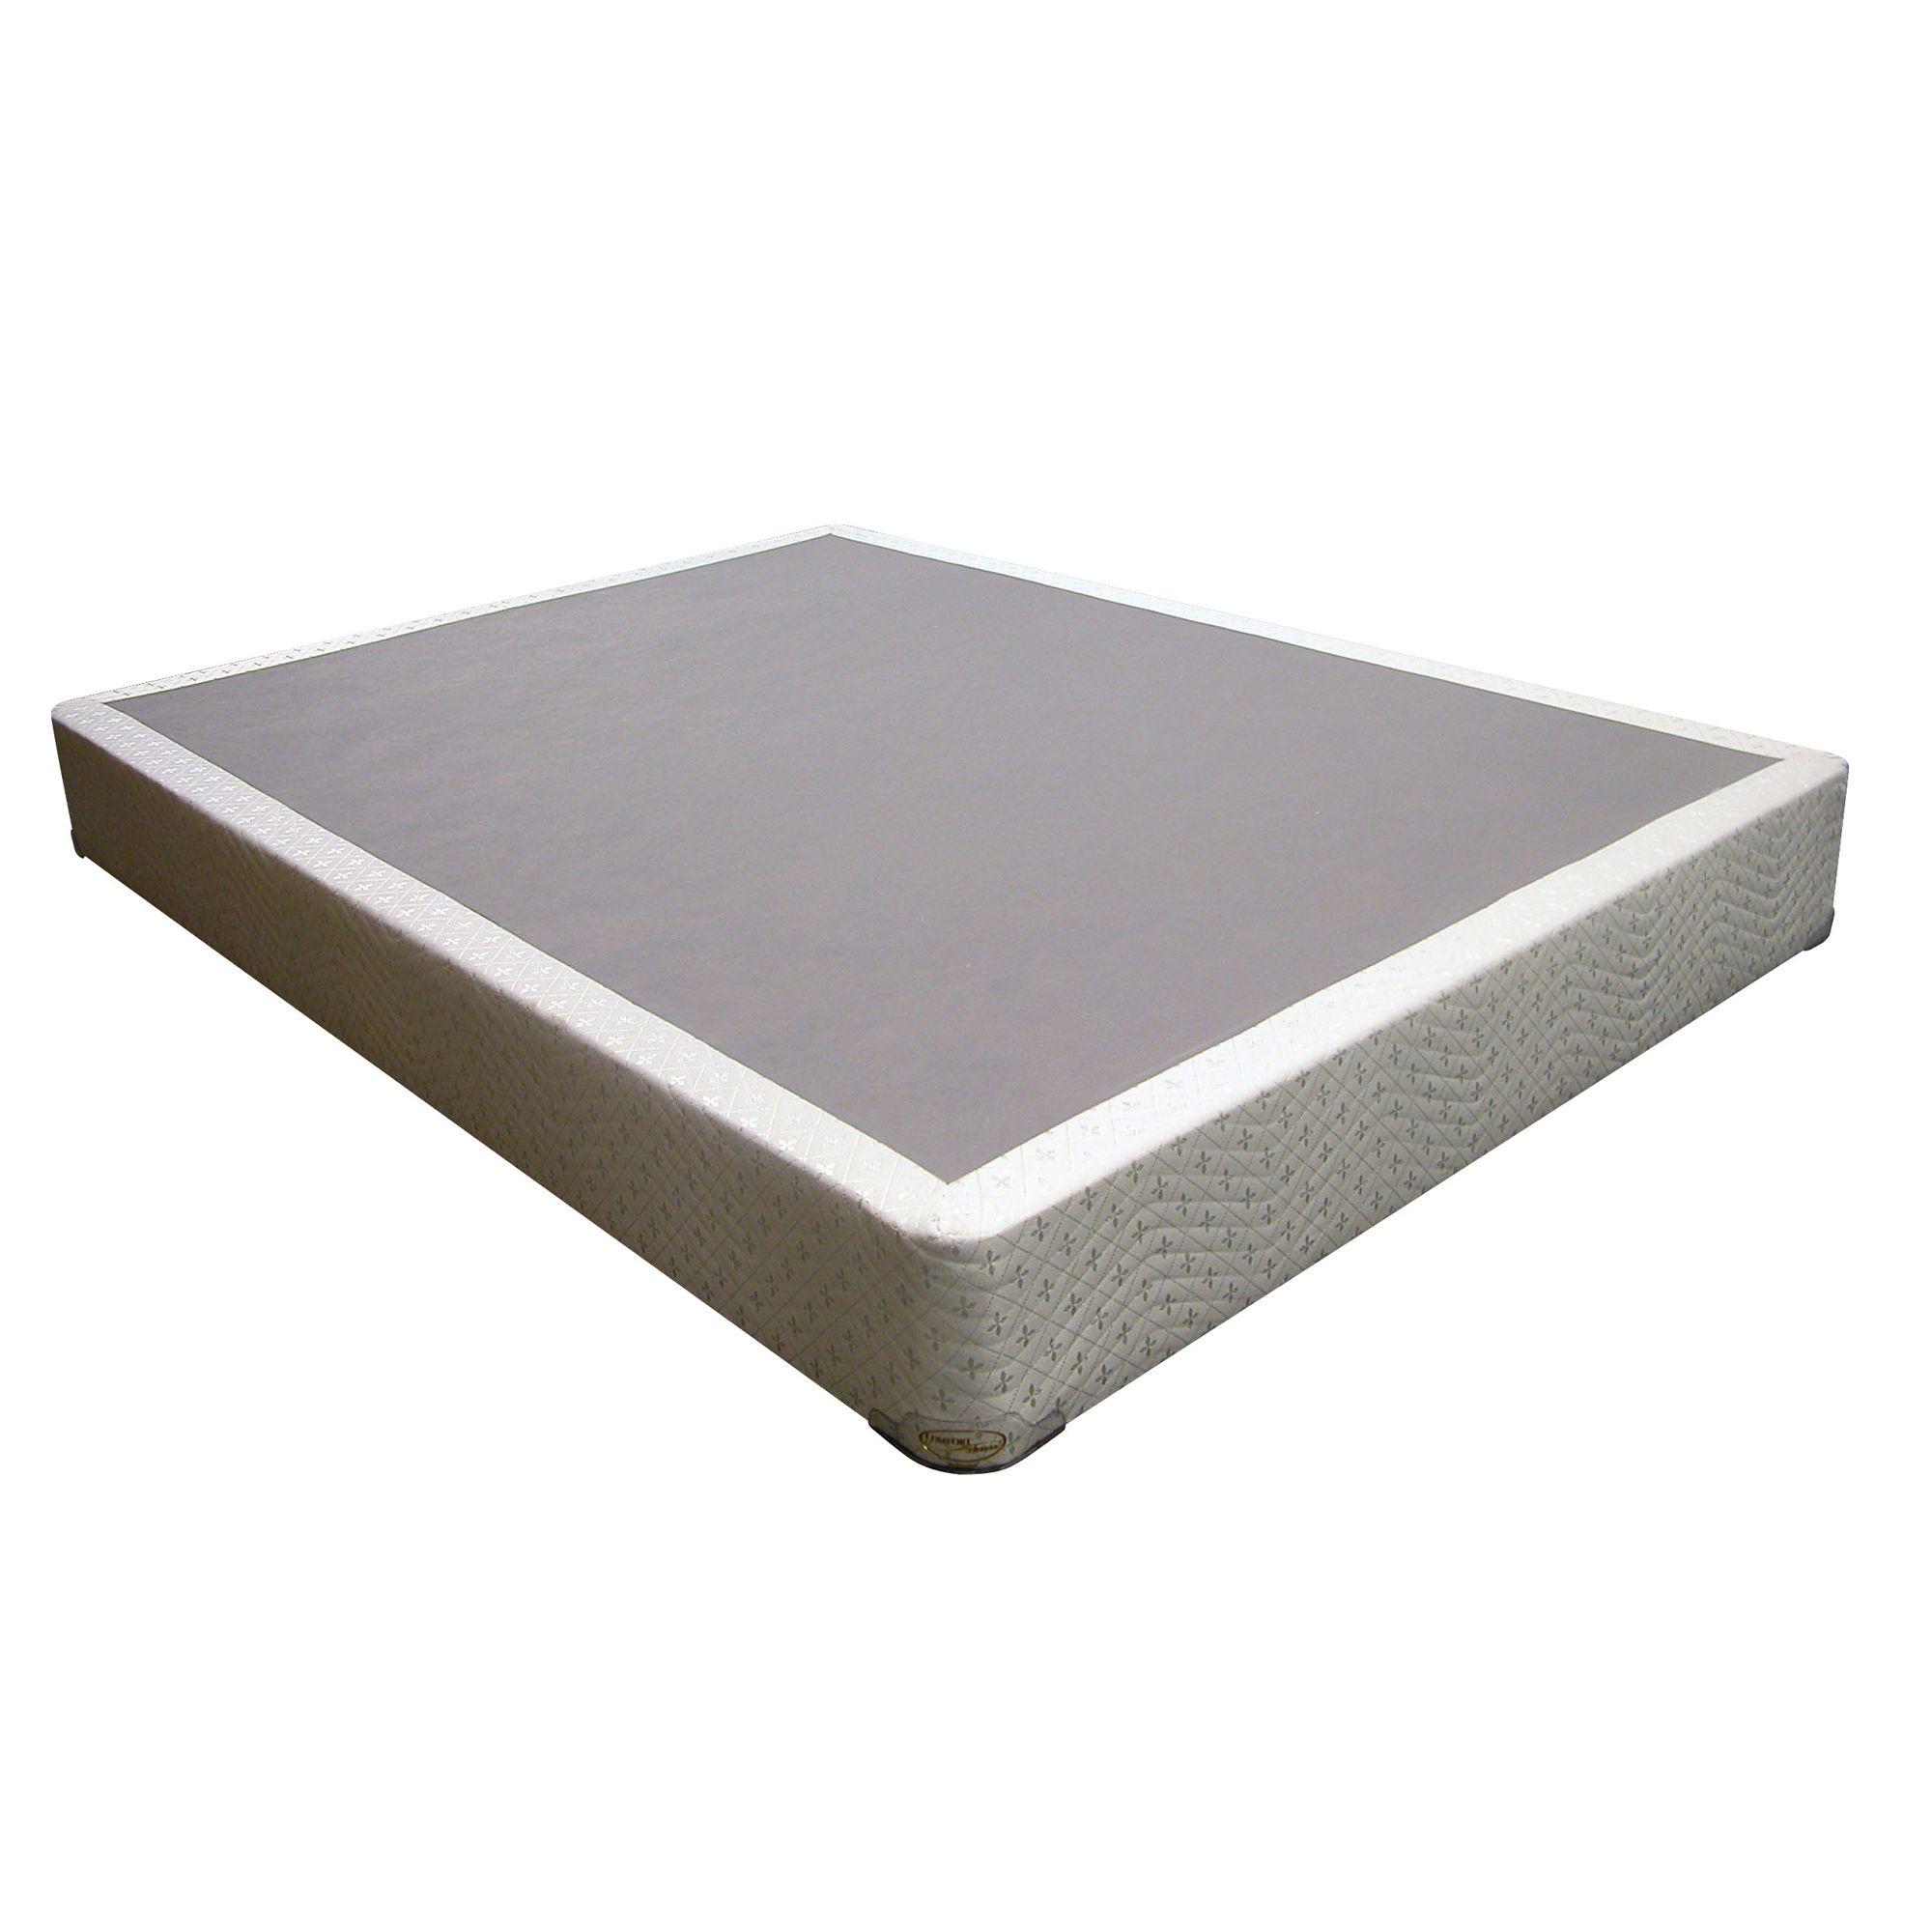 Spine Support Split Lowprofile Queen Box Spring - Home Mattresses & Accessories Springs